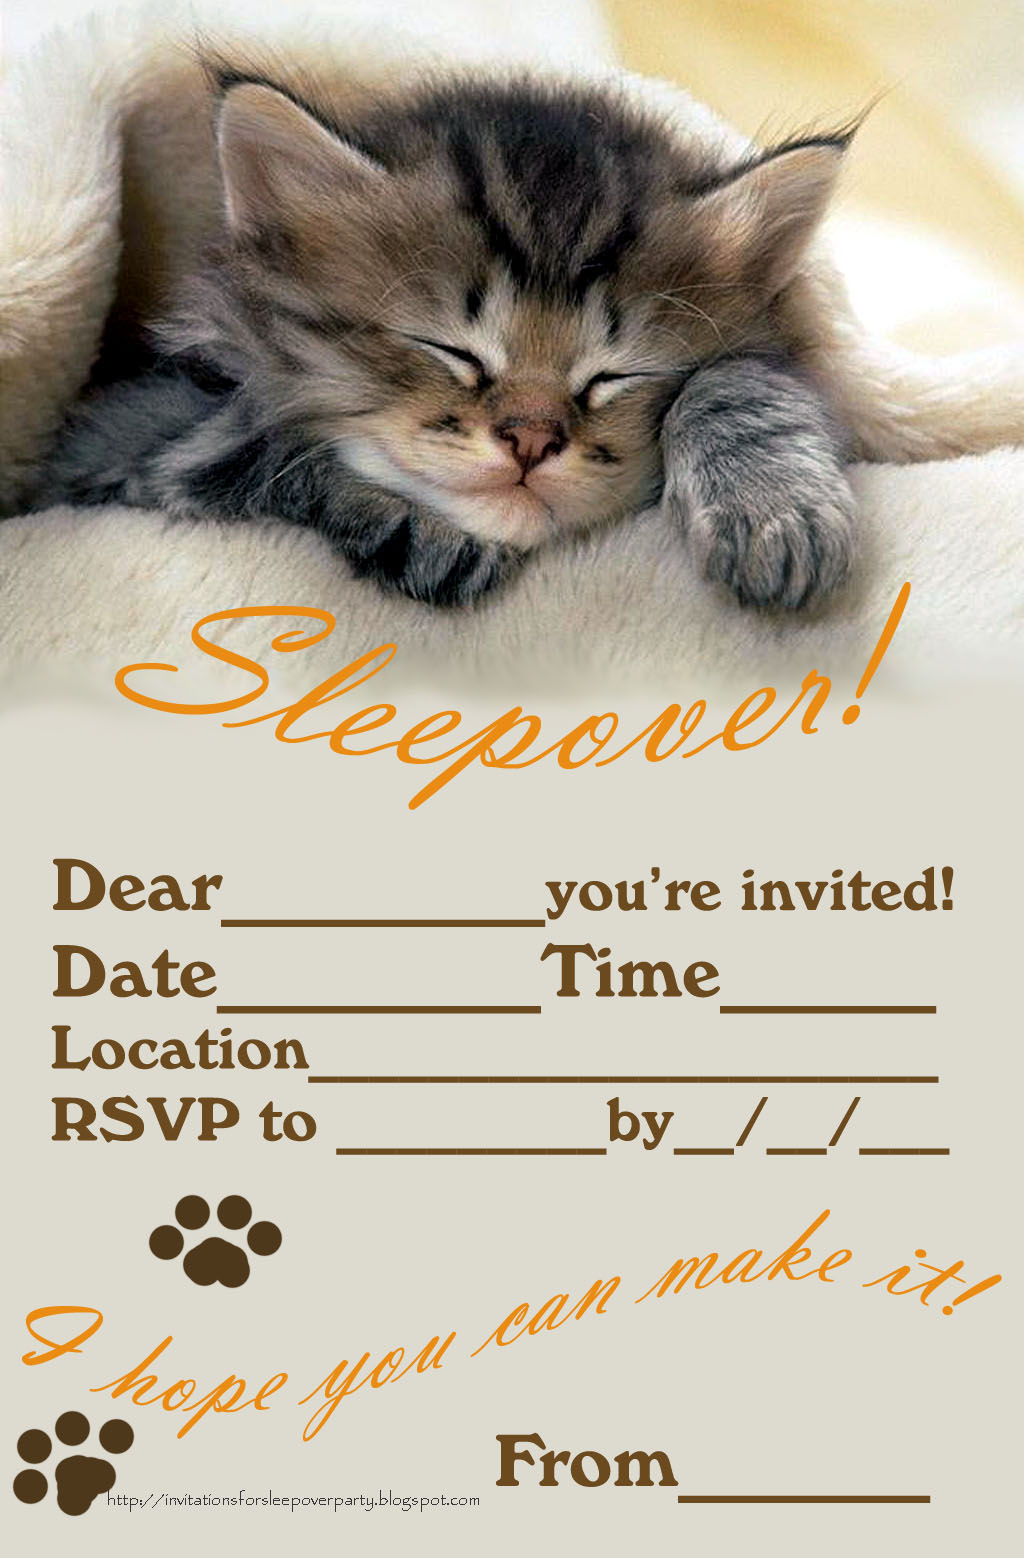 Sizzling image inside free printable sleepover invitations